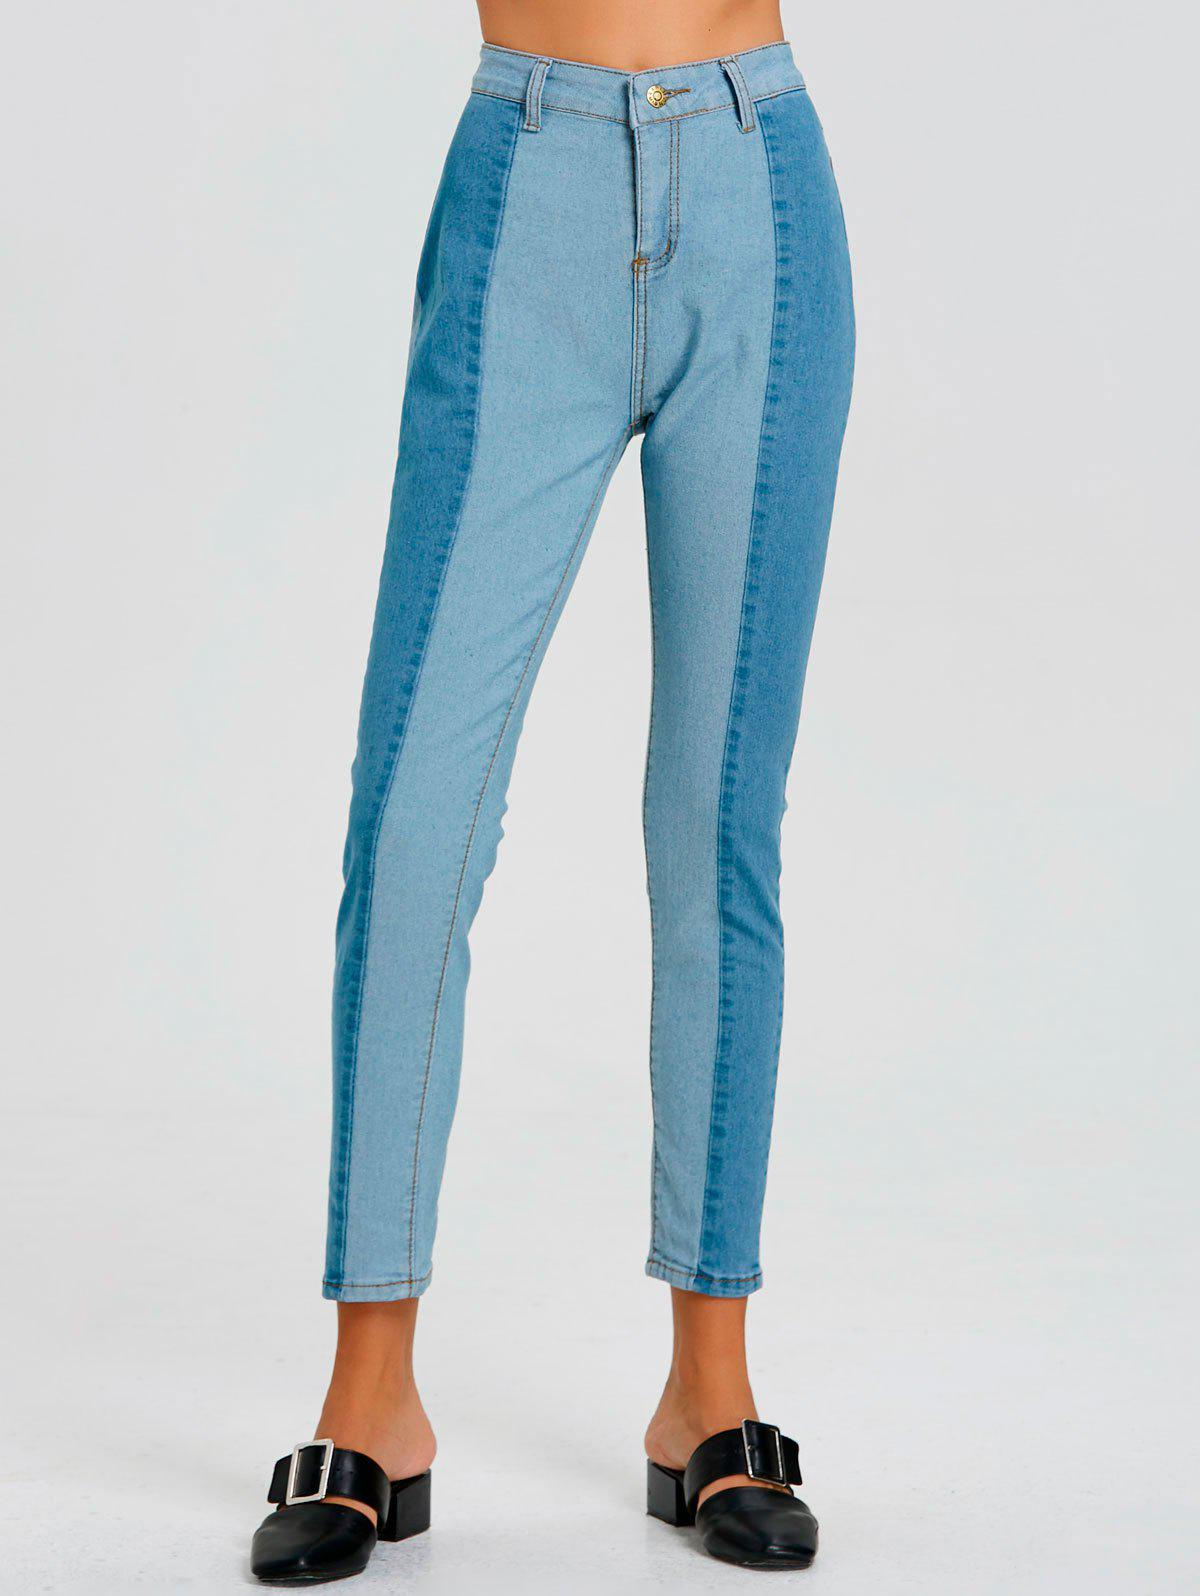 Color Block Striped Jeans - BLUE S